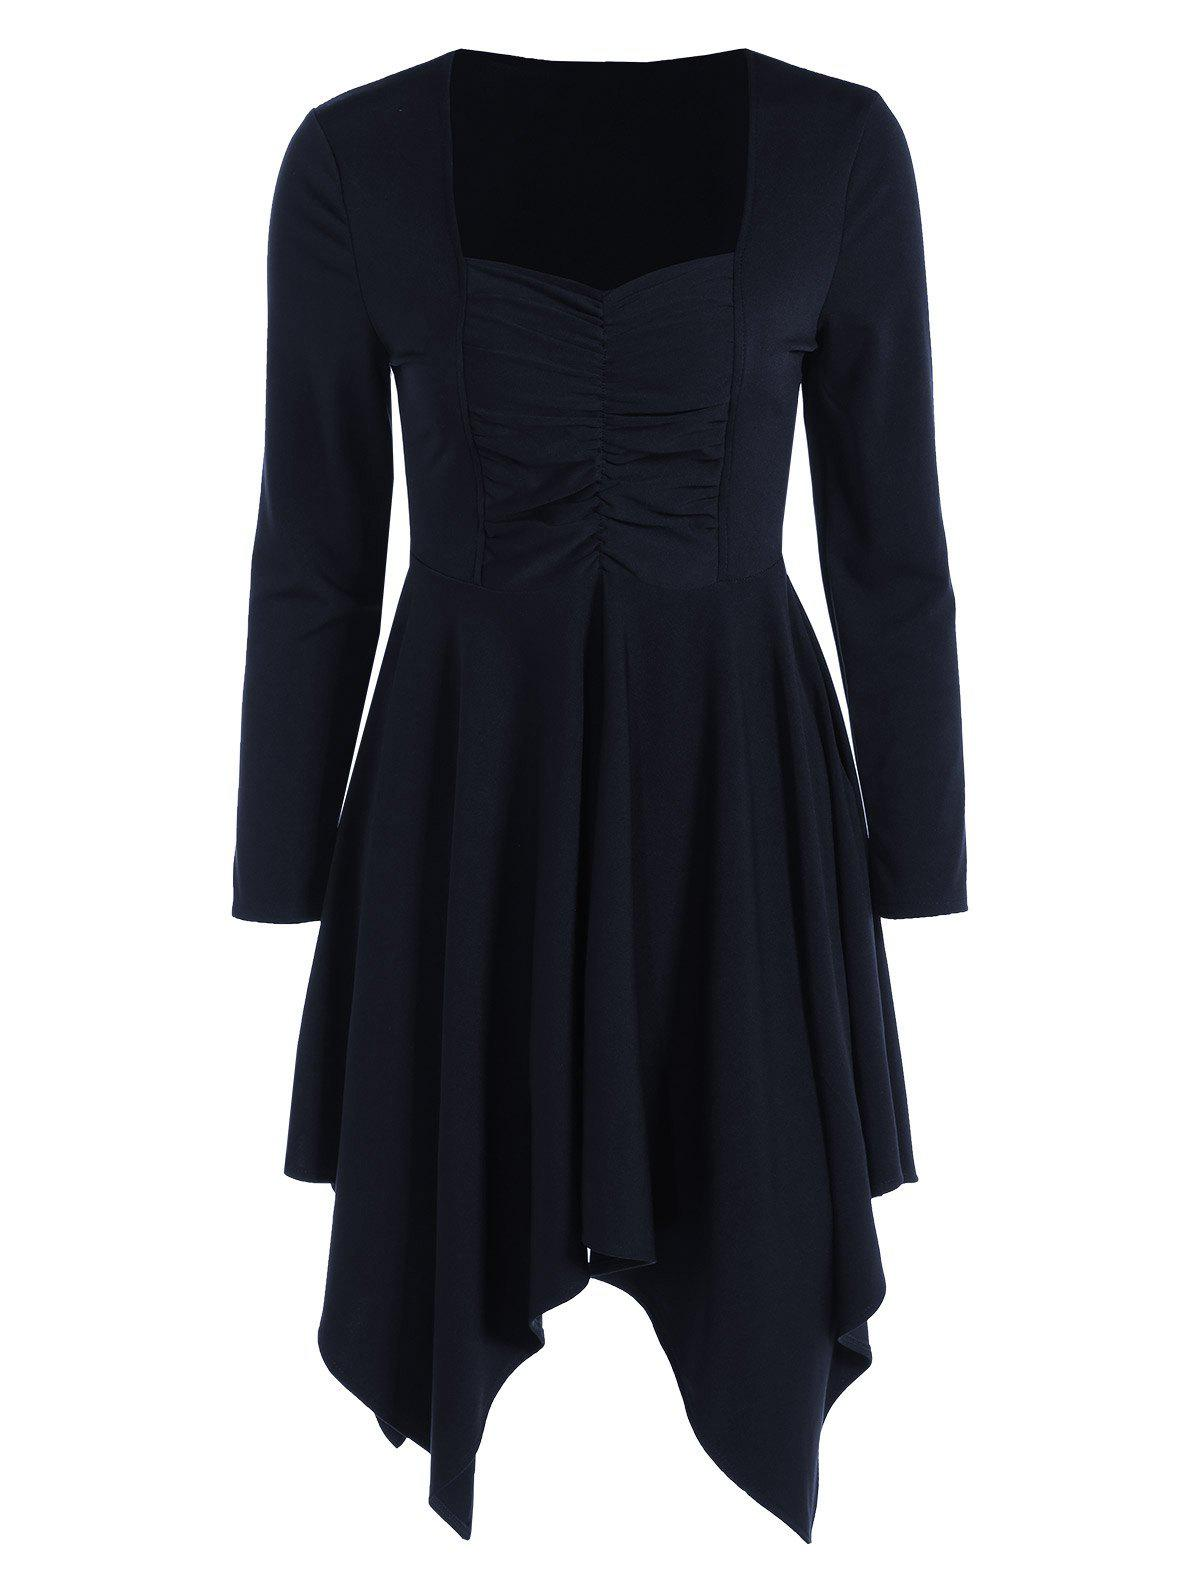 Sweetheart Collar Long Sleeve Handkerchief Tunic Dress - PURPLISH BLUE L